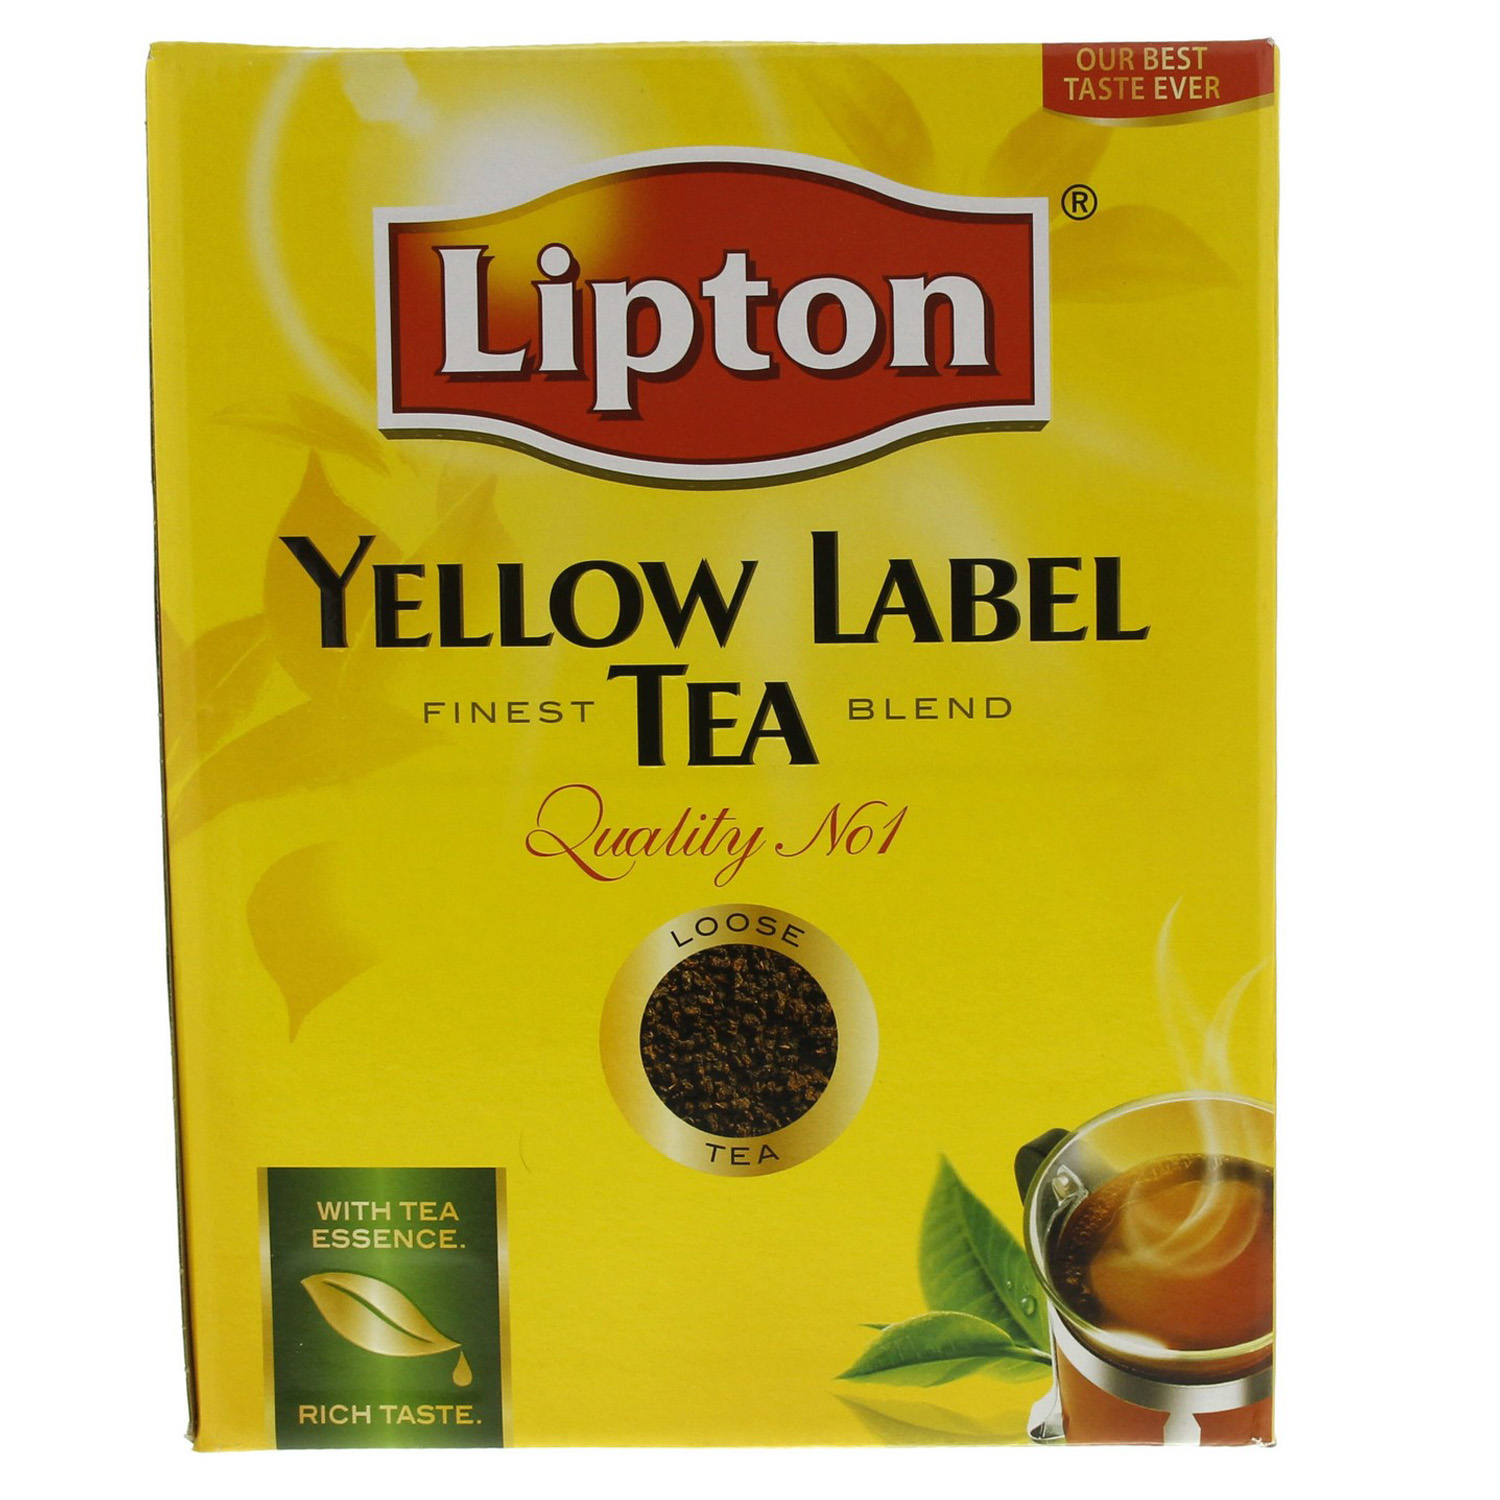 marketing plan of lipton yellow label tea The marketing strategy for a tea business plan also depends on the specific nature of the company and its business model a wholesale tea company that sells directly to retailers may focus on building its brand awareness and attending trade shows.